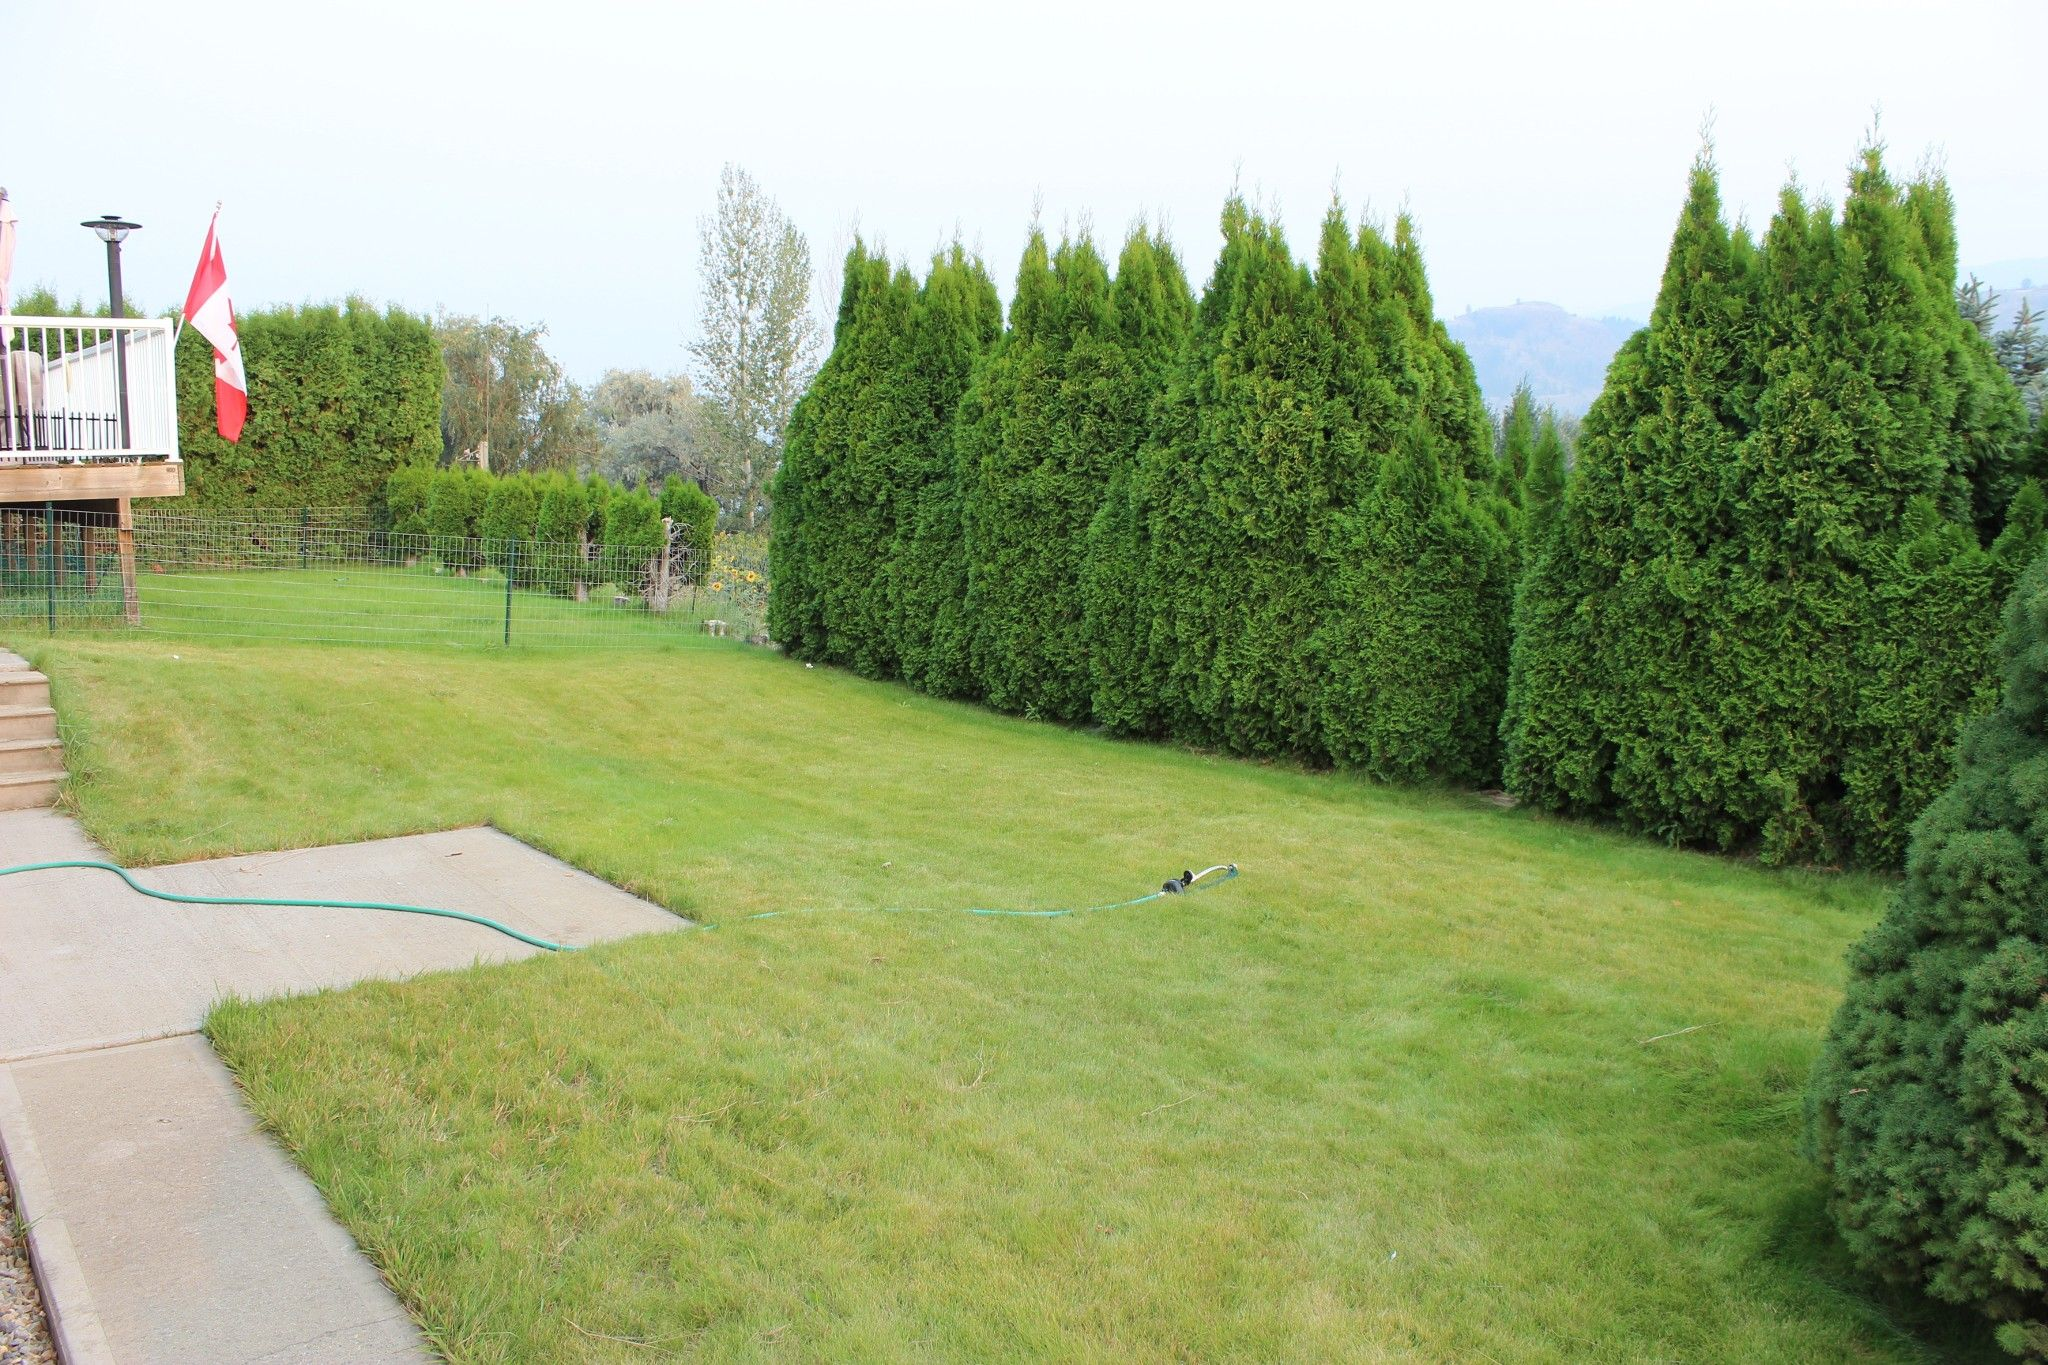 Photo 15: Photos: 22 3099 E Shuswap Road in Kamloops: South Thompson Valley Manufactured Home for sale : MLS®# 147827